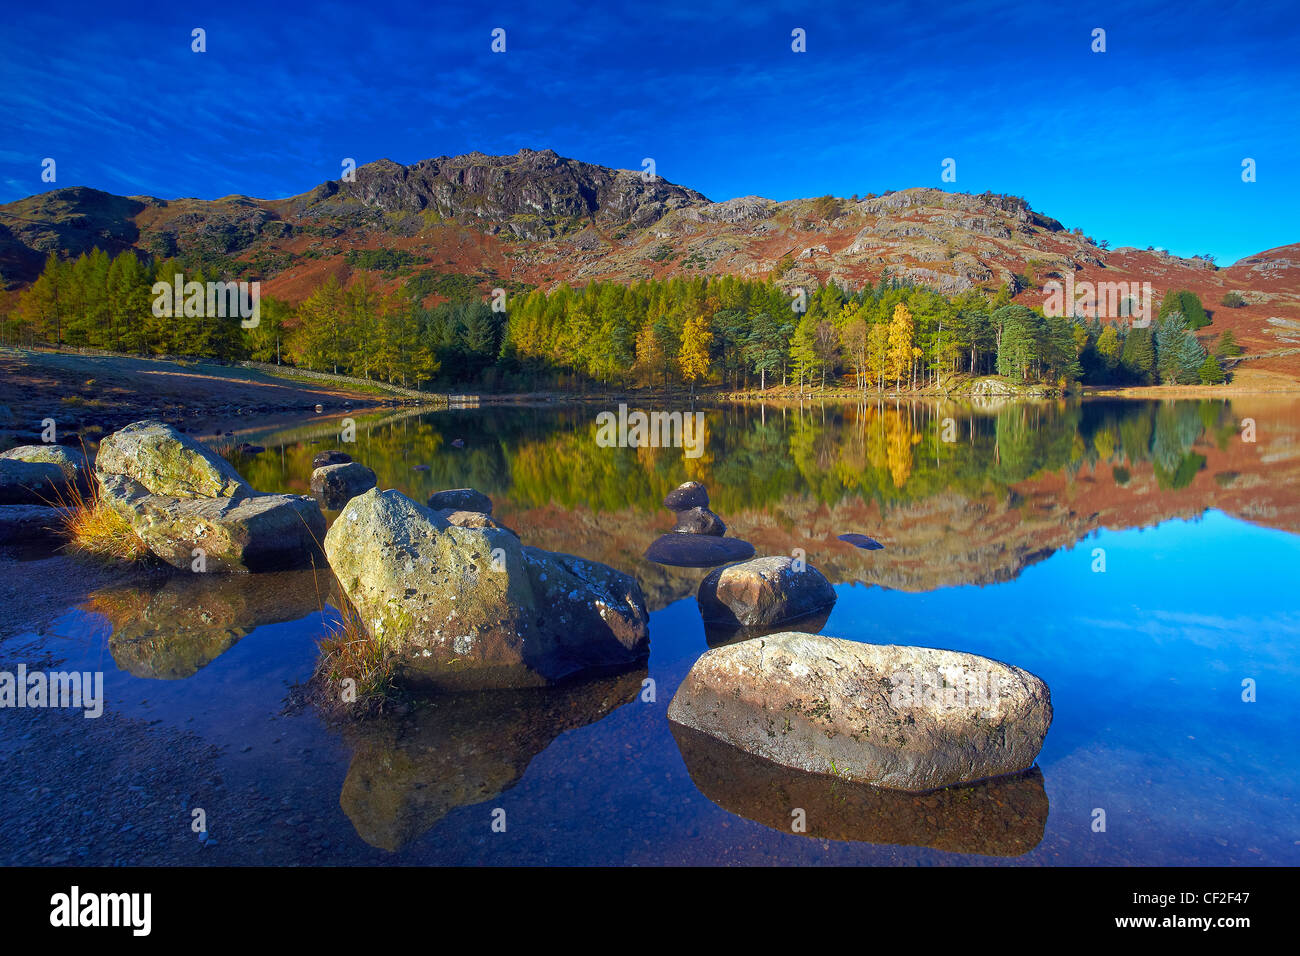 Forestry and hillside reflected in the still water of Blea Tarn in autumn. Stock Photo